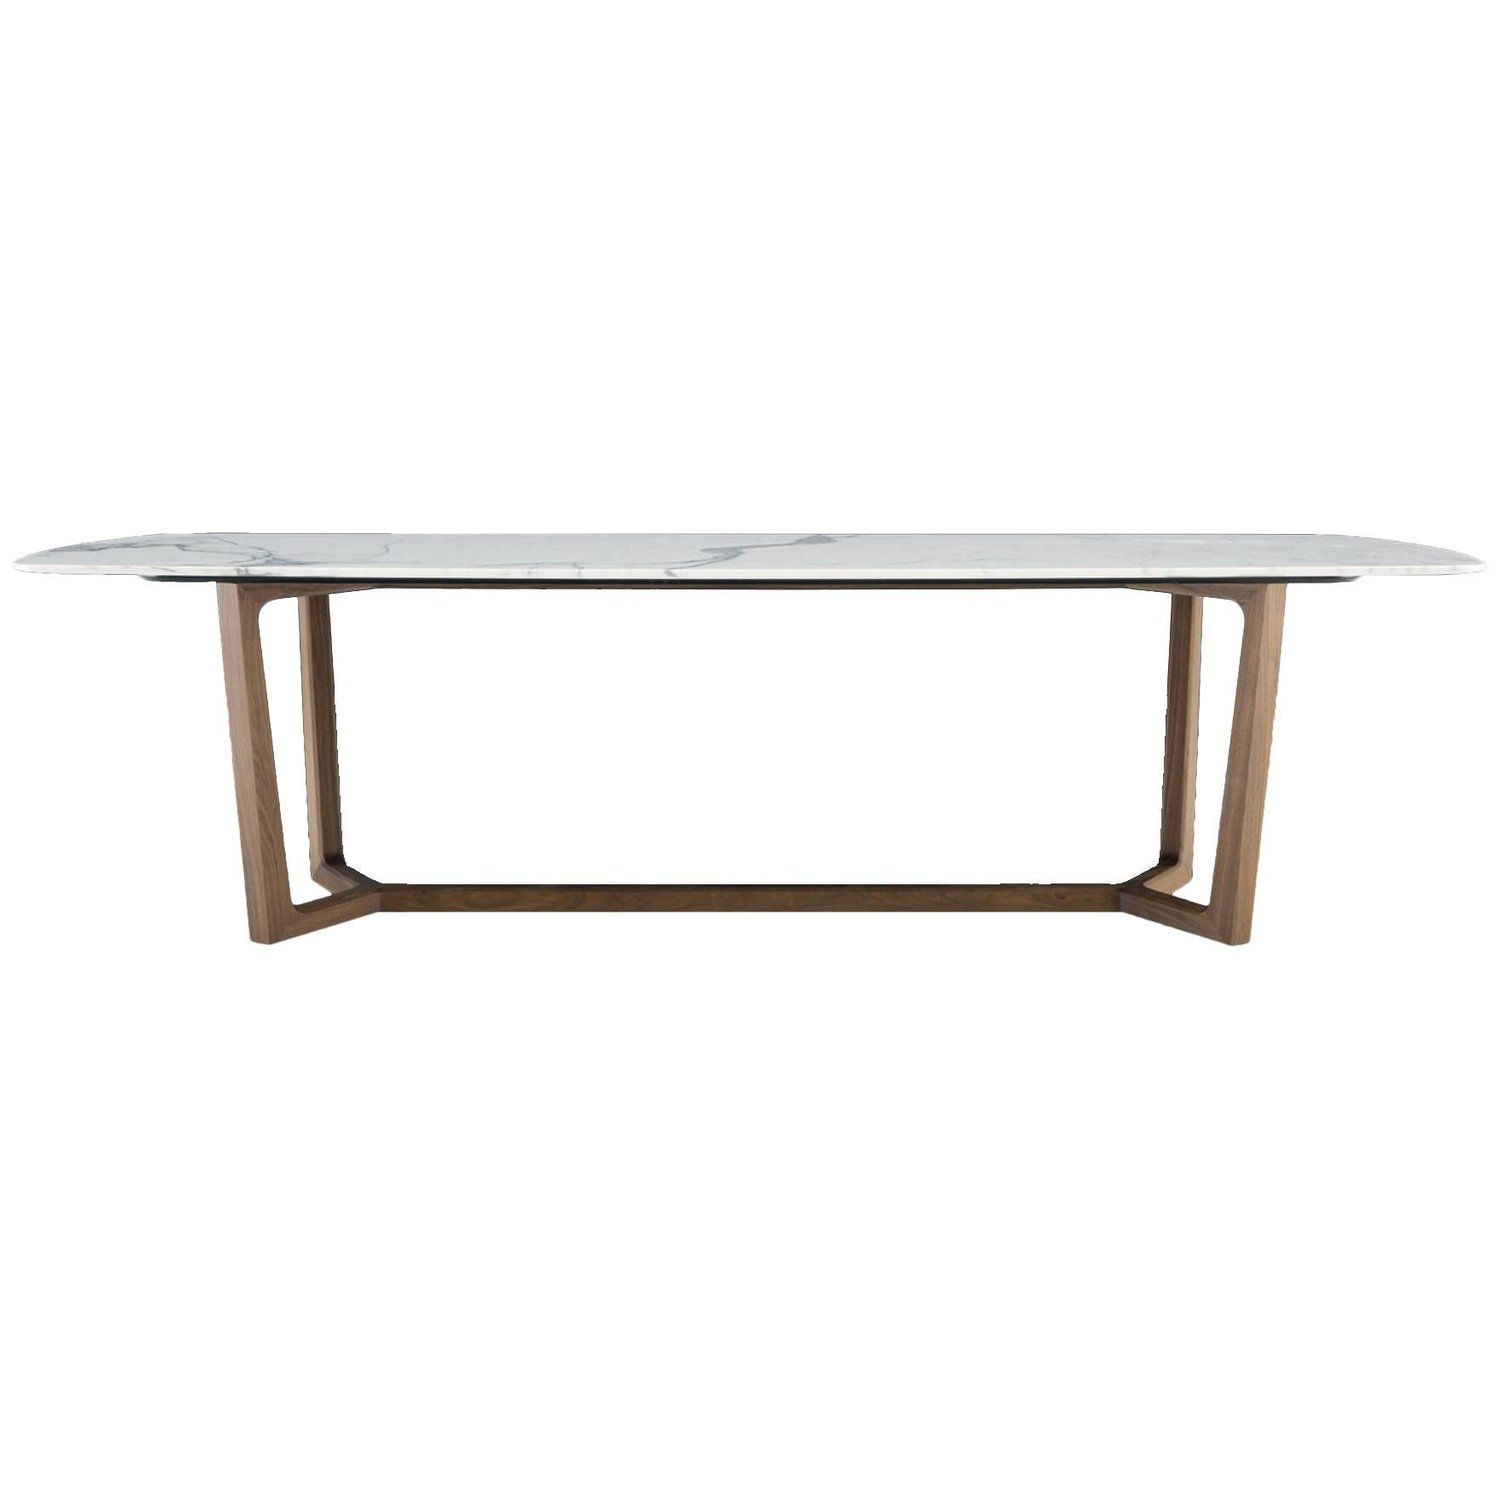 Poliform Concorde Dining Table Four Wood Bases And Six Marble Top